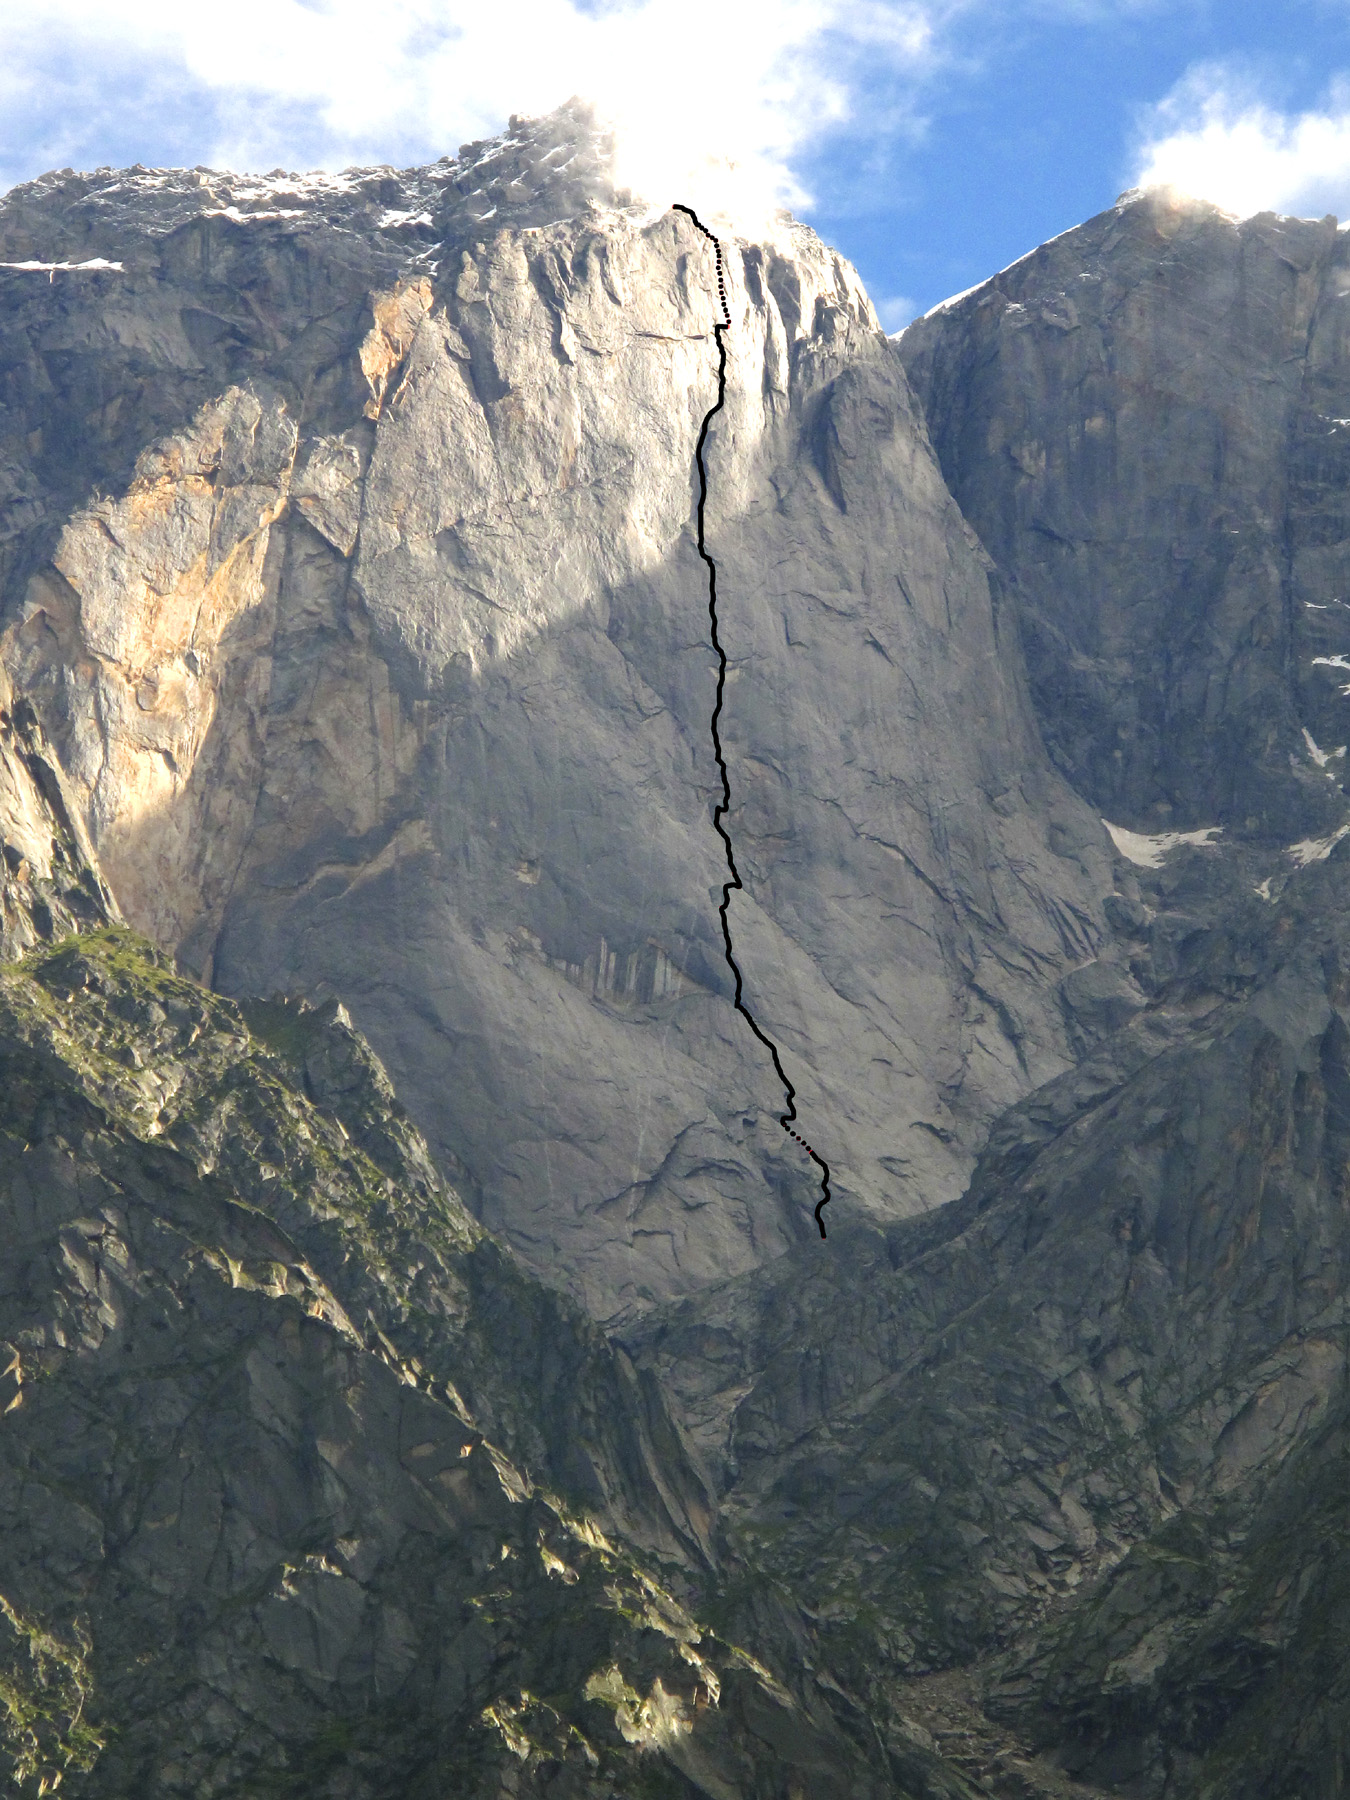 A ca 950m wall on the southern flanks of Raldang. Marked is the line of Naufragi. Marc Martin